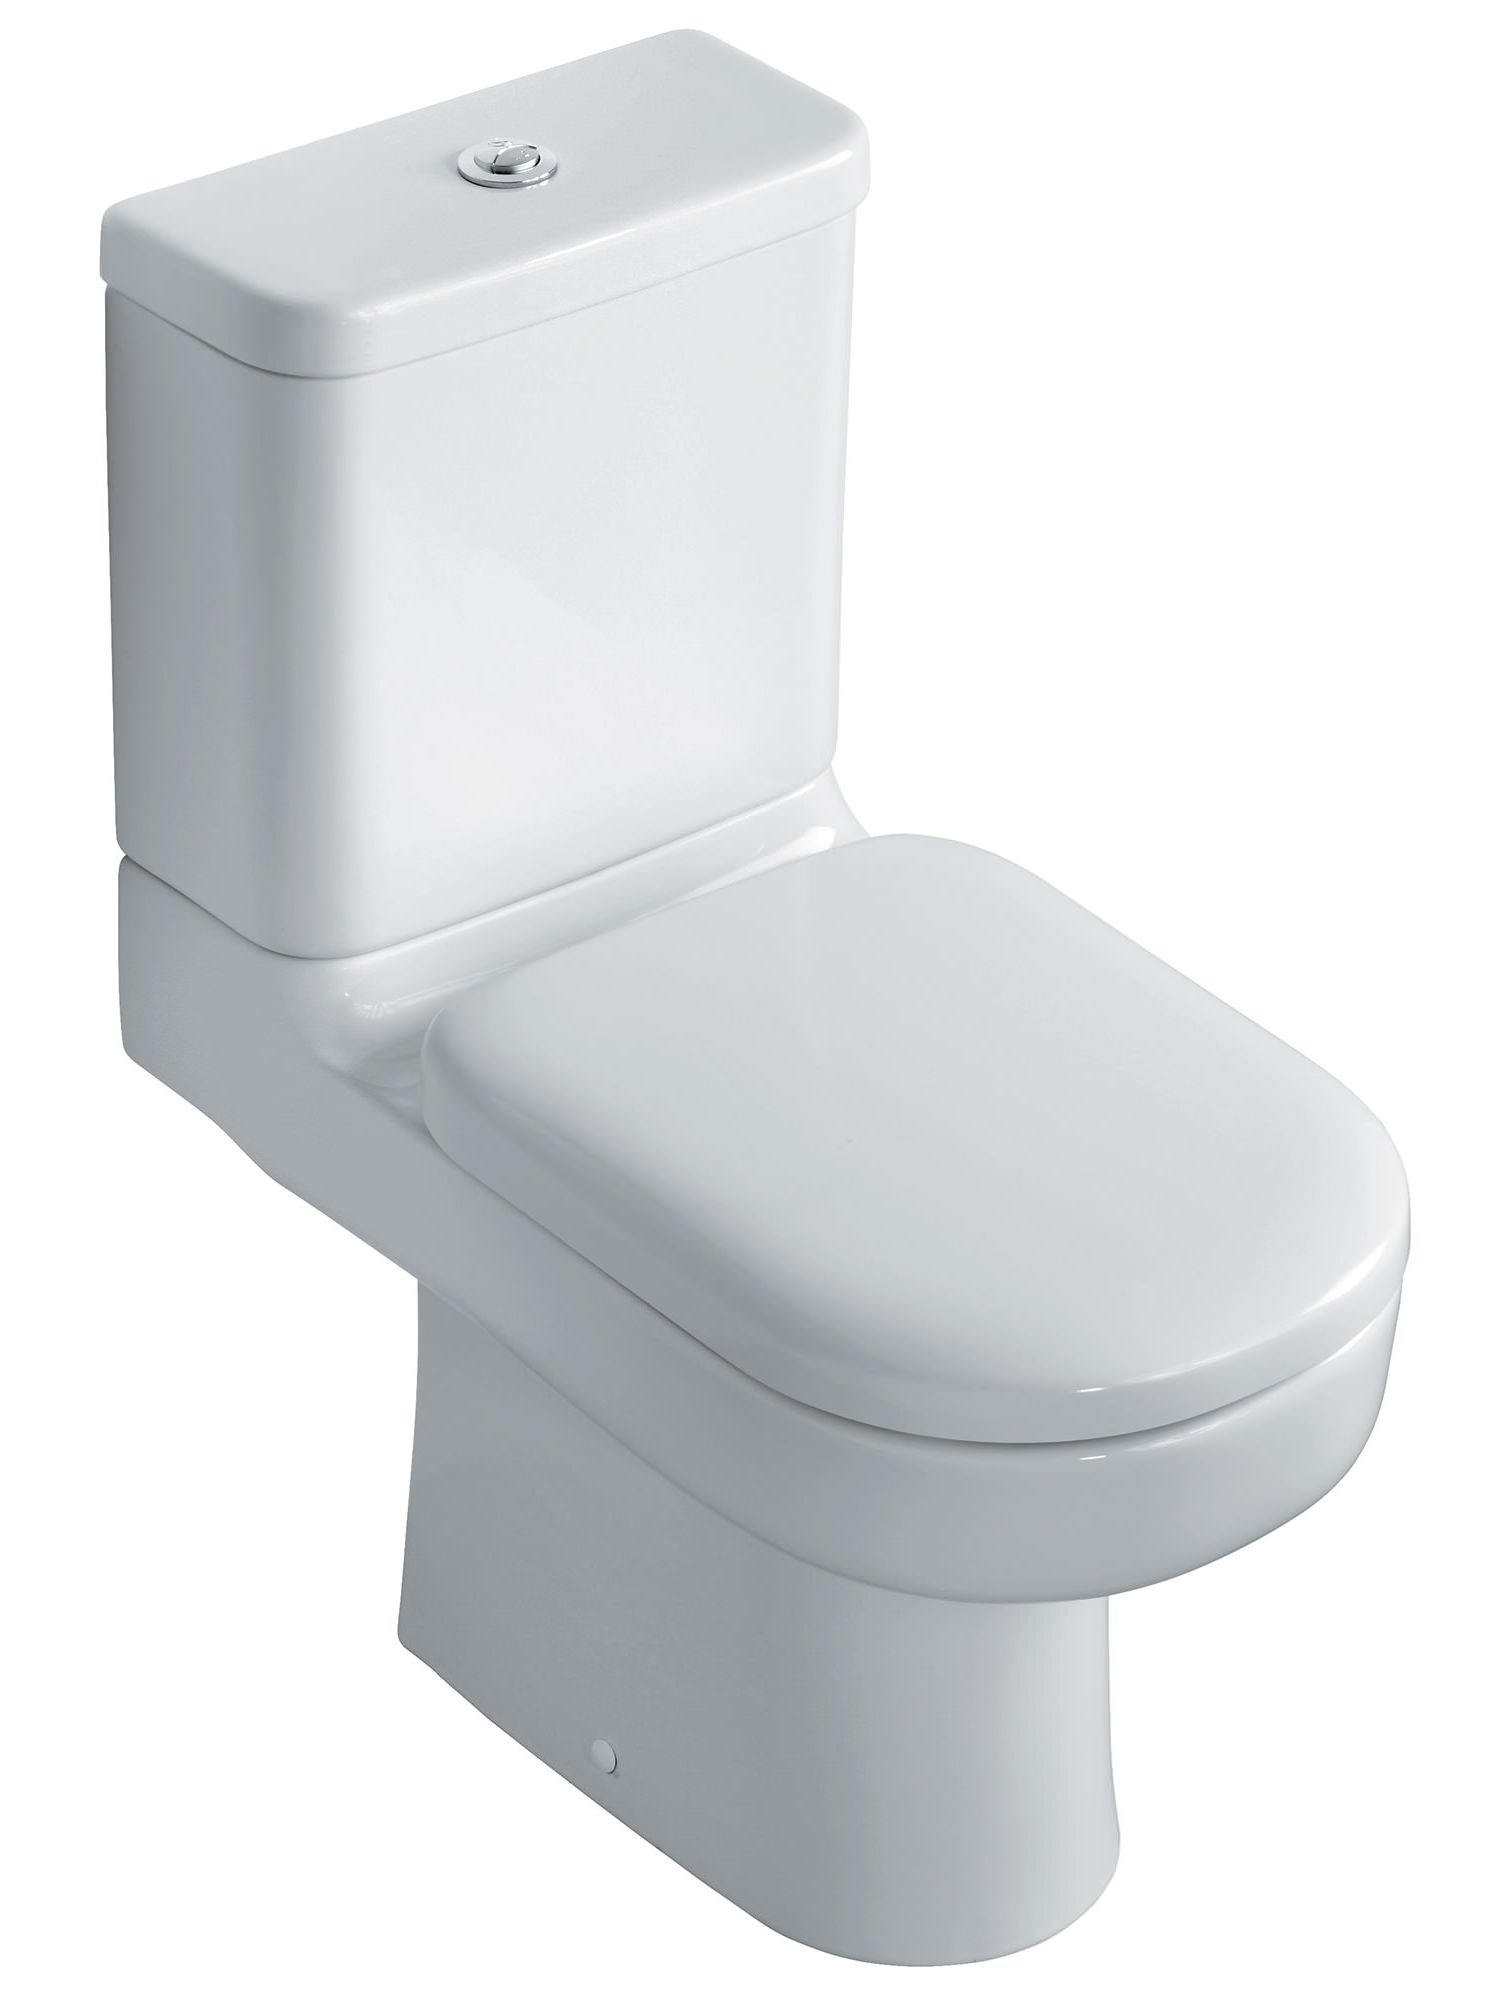 Gäste Wc Waschtisch Ideal Standard Ideal Standard Playa Close Coupled Wc Pan 660mm J468101